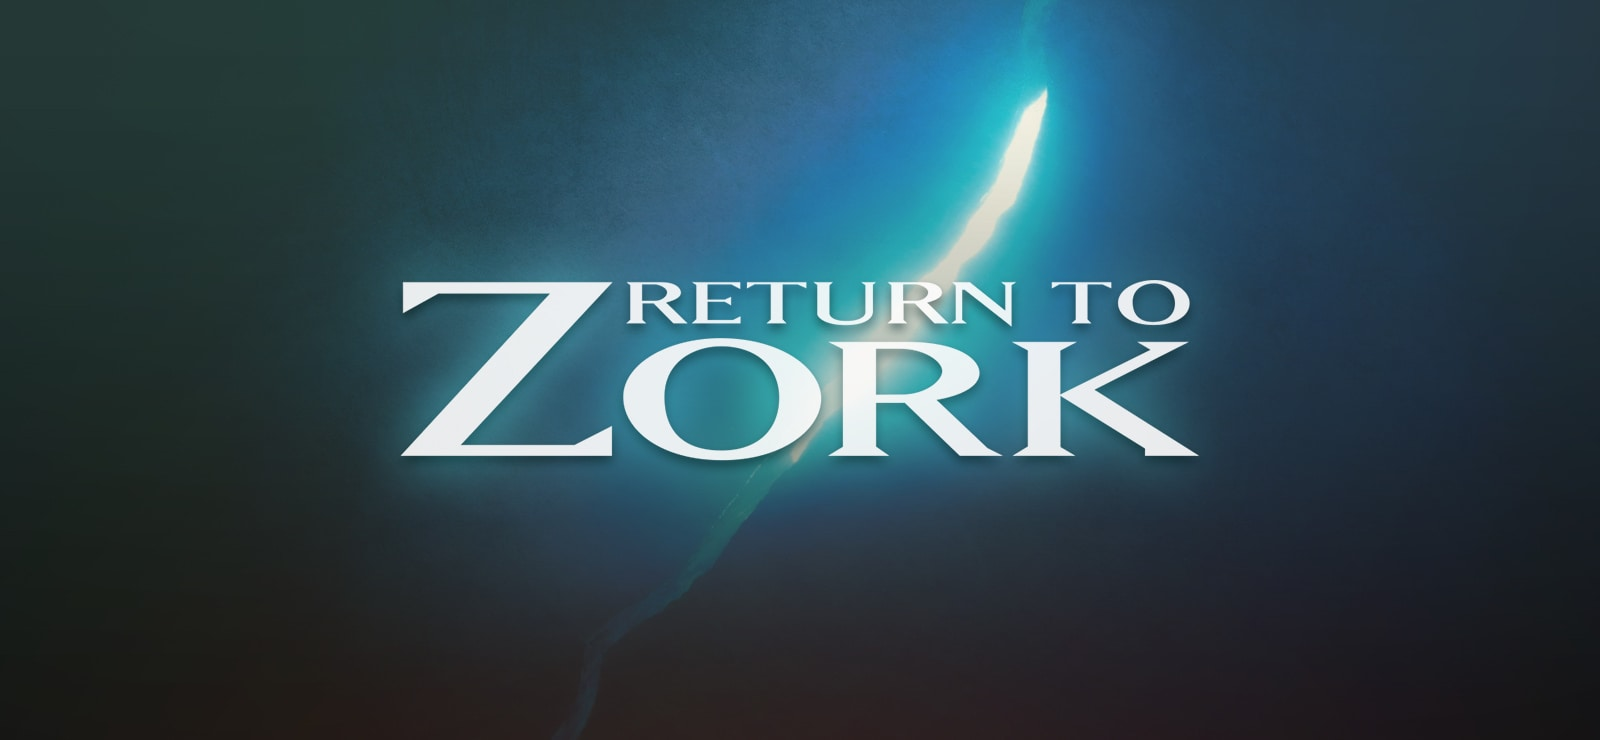 Return To Zork varies-with-device